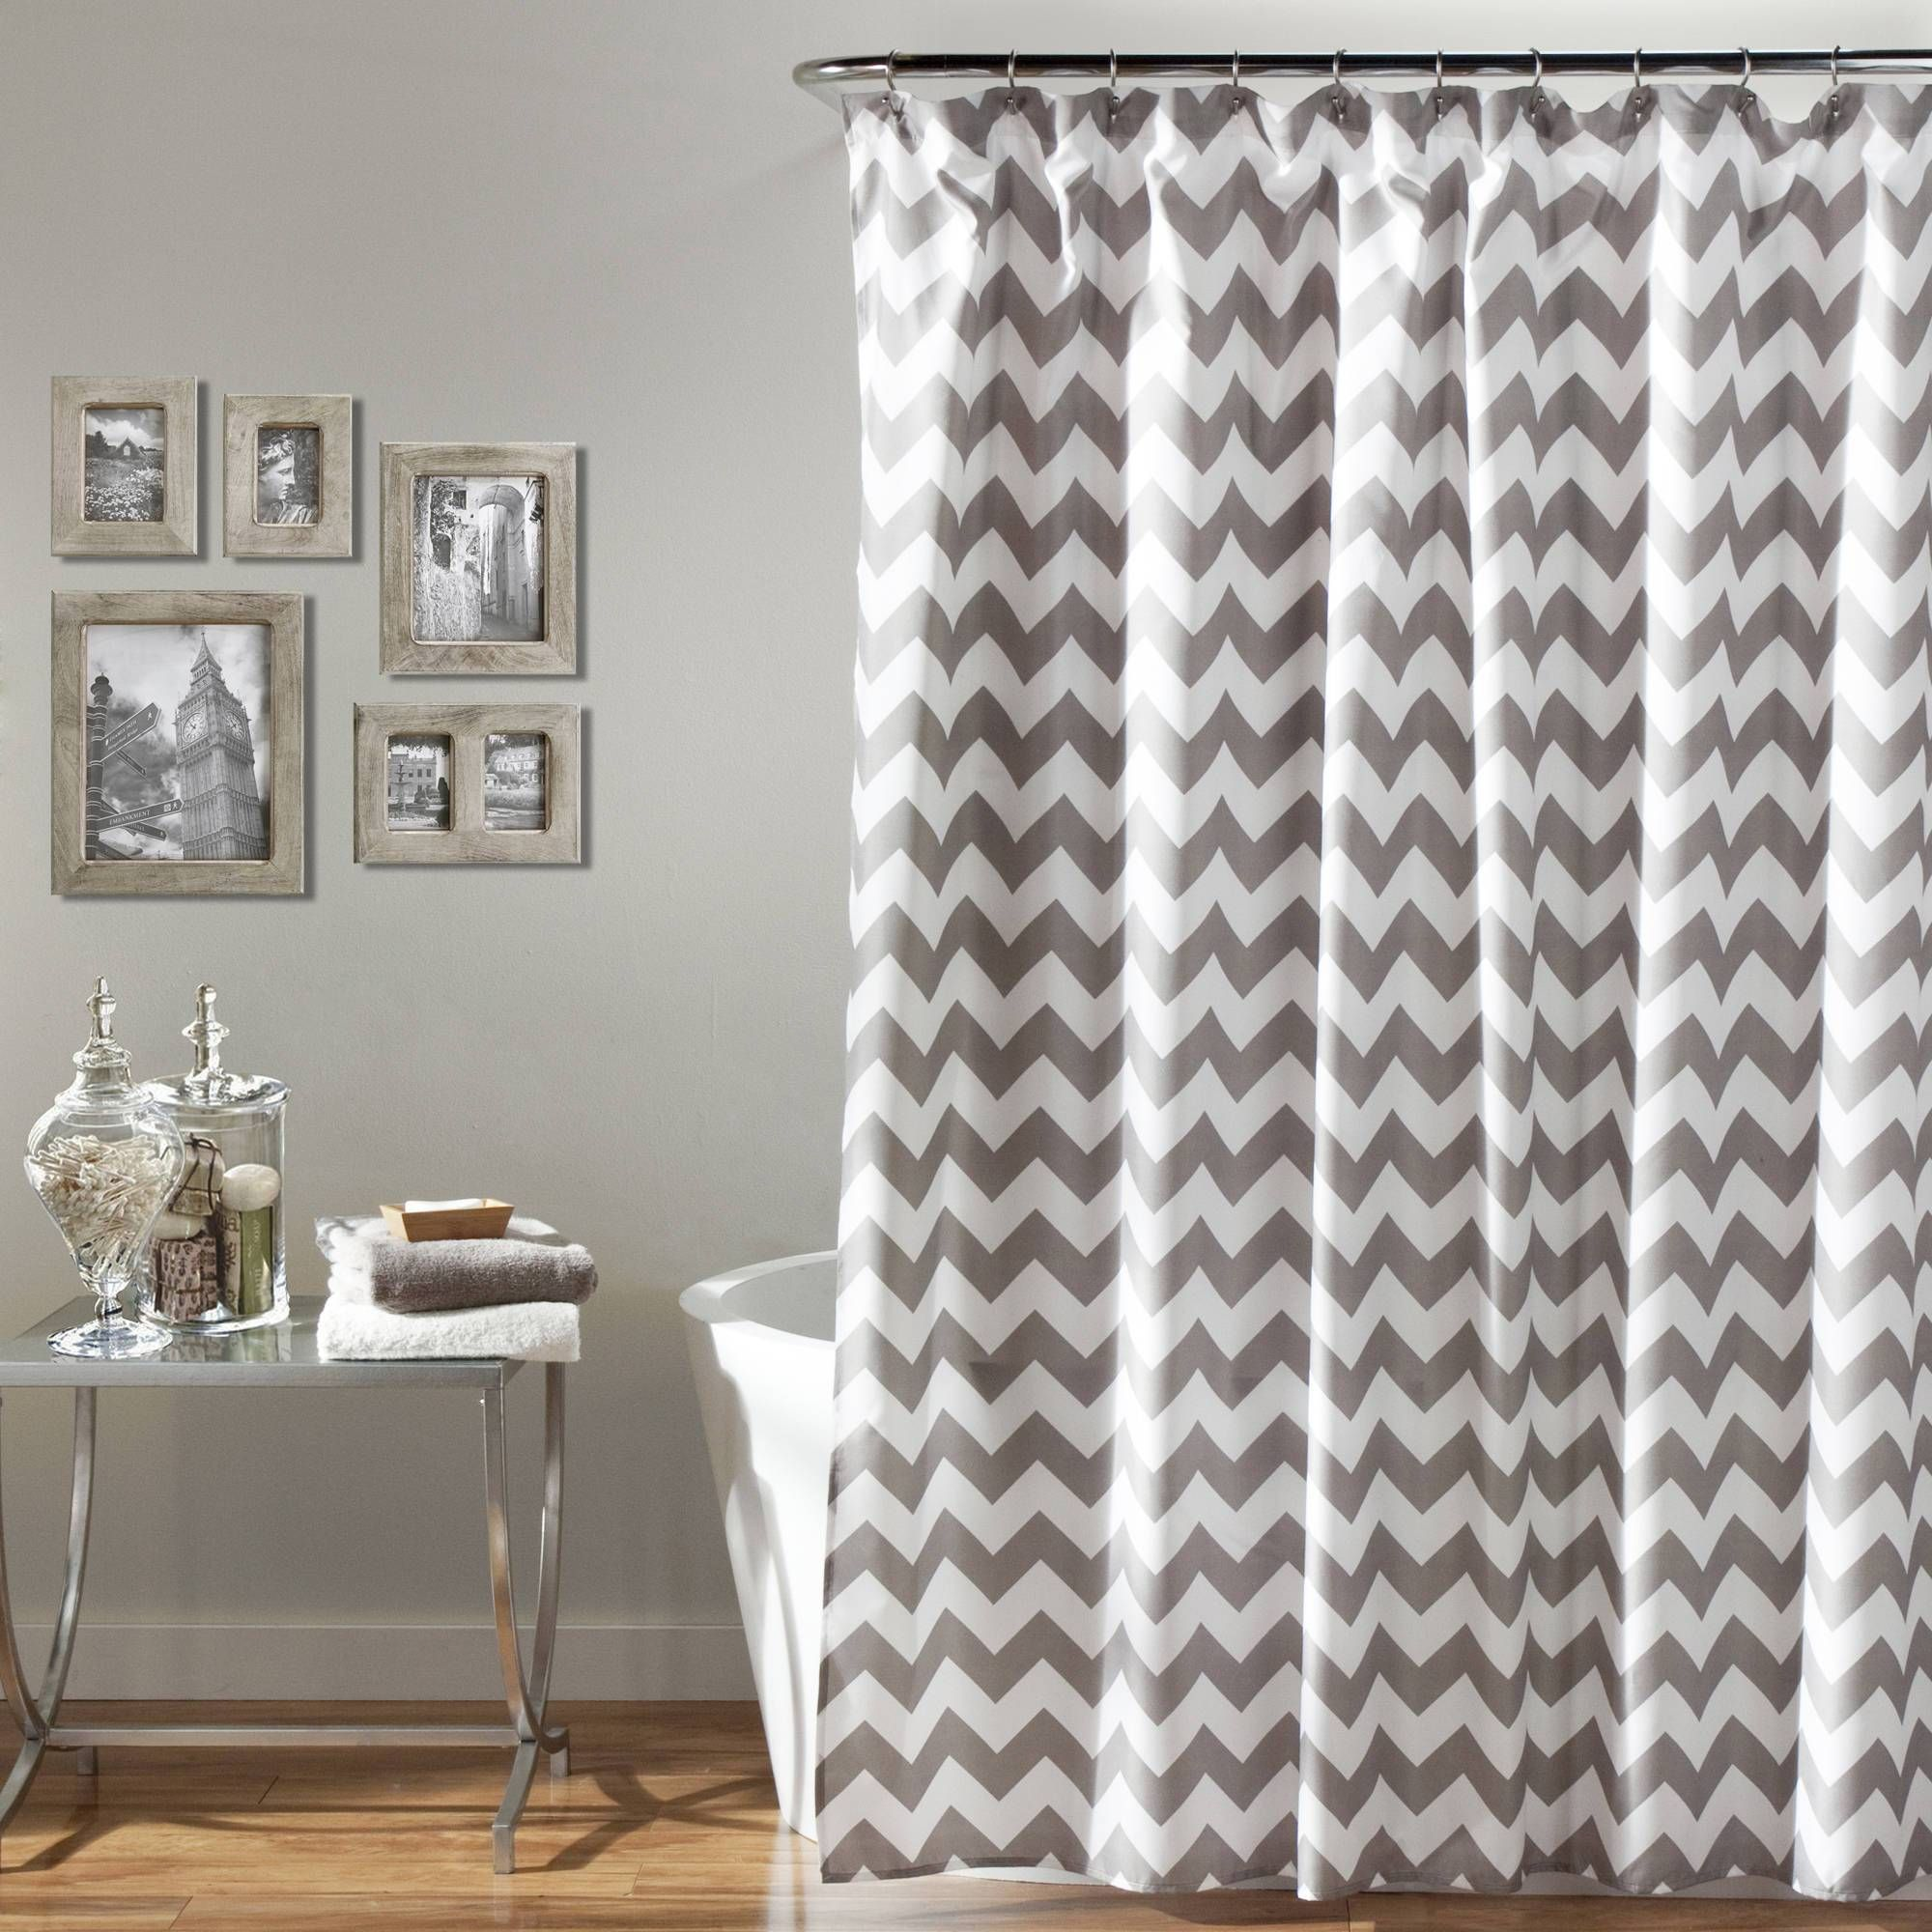 Echelon Home Chevron Shower Curtain Chevron Shower Curtain Gray